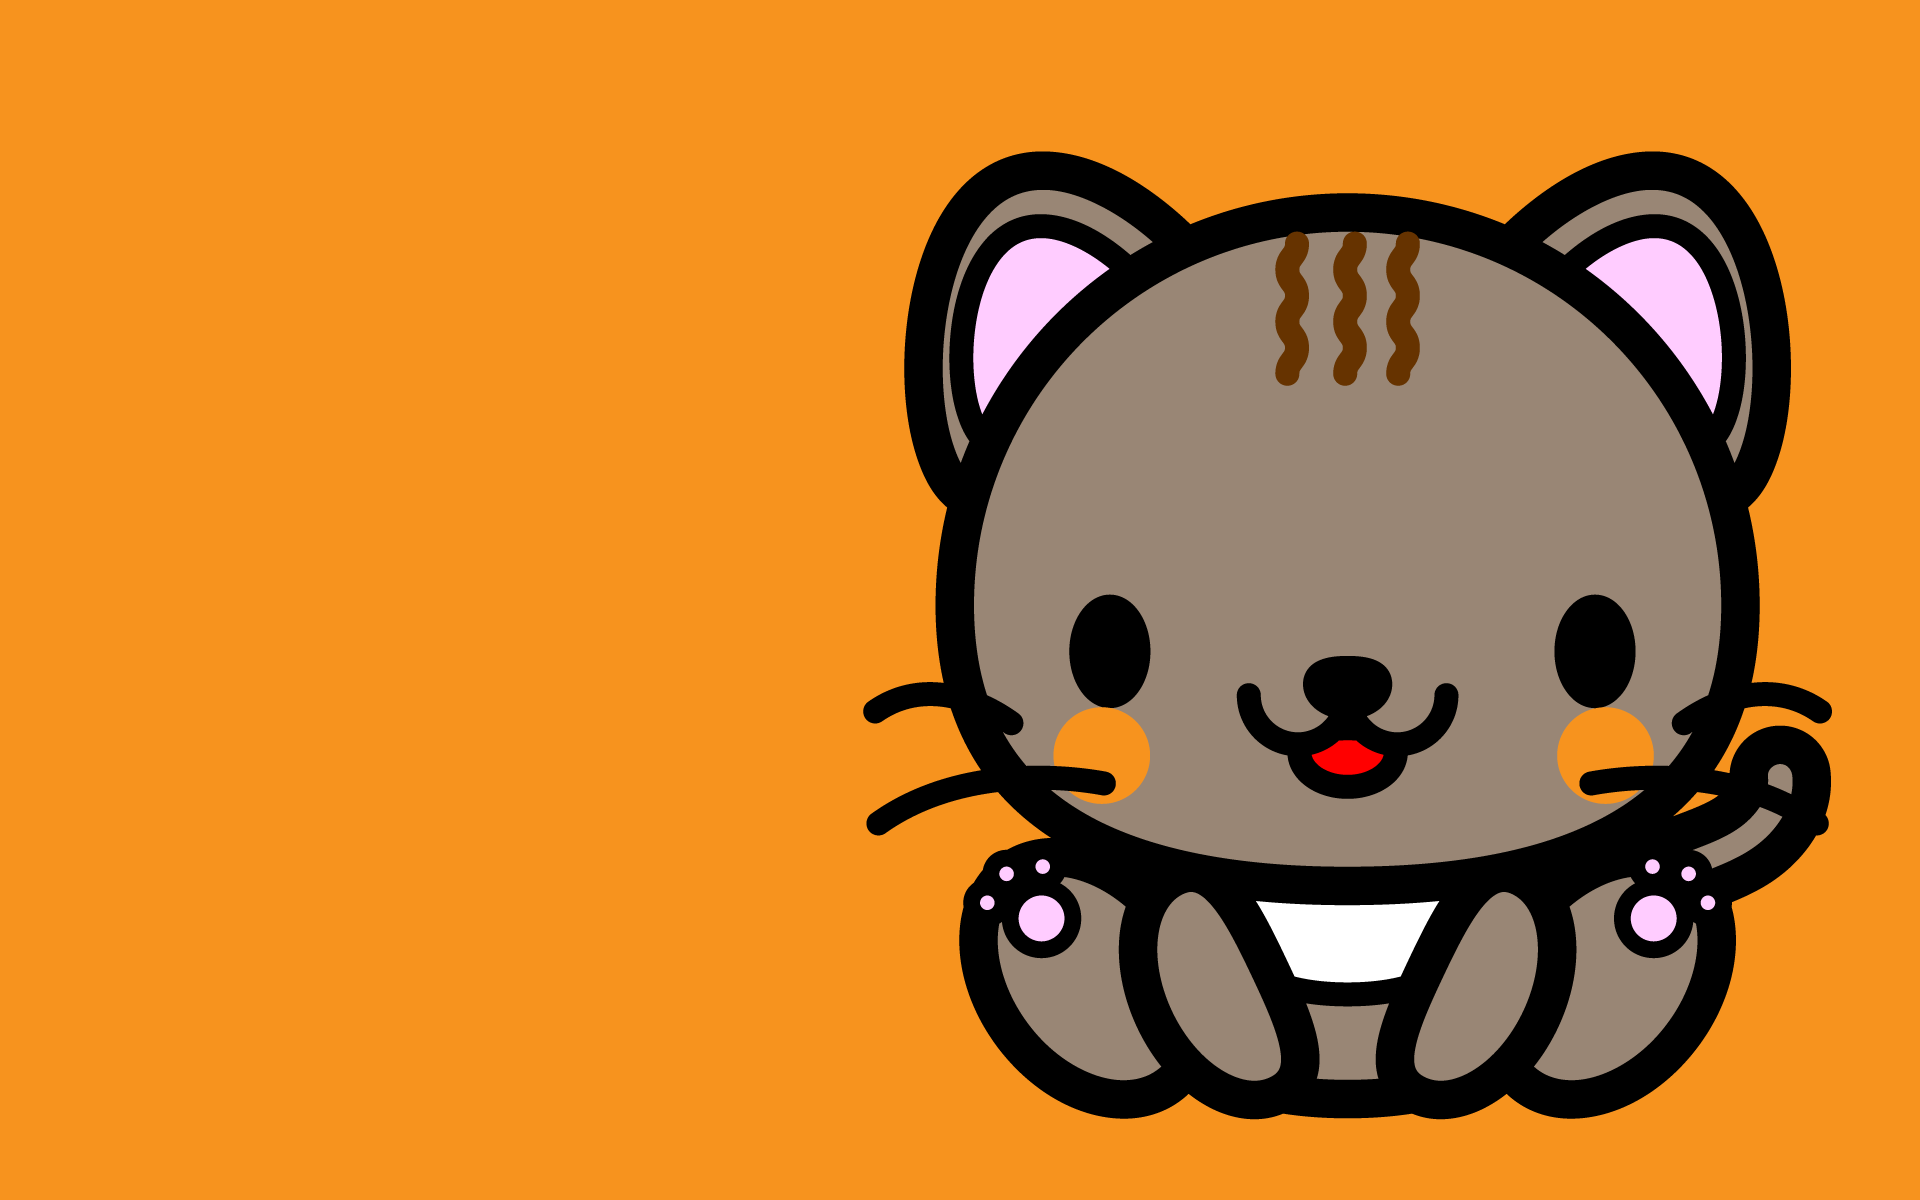 wallpaper1_sitcat-orange-pc